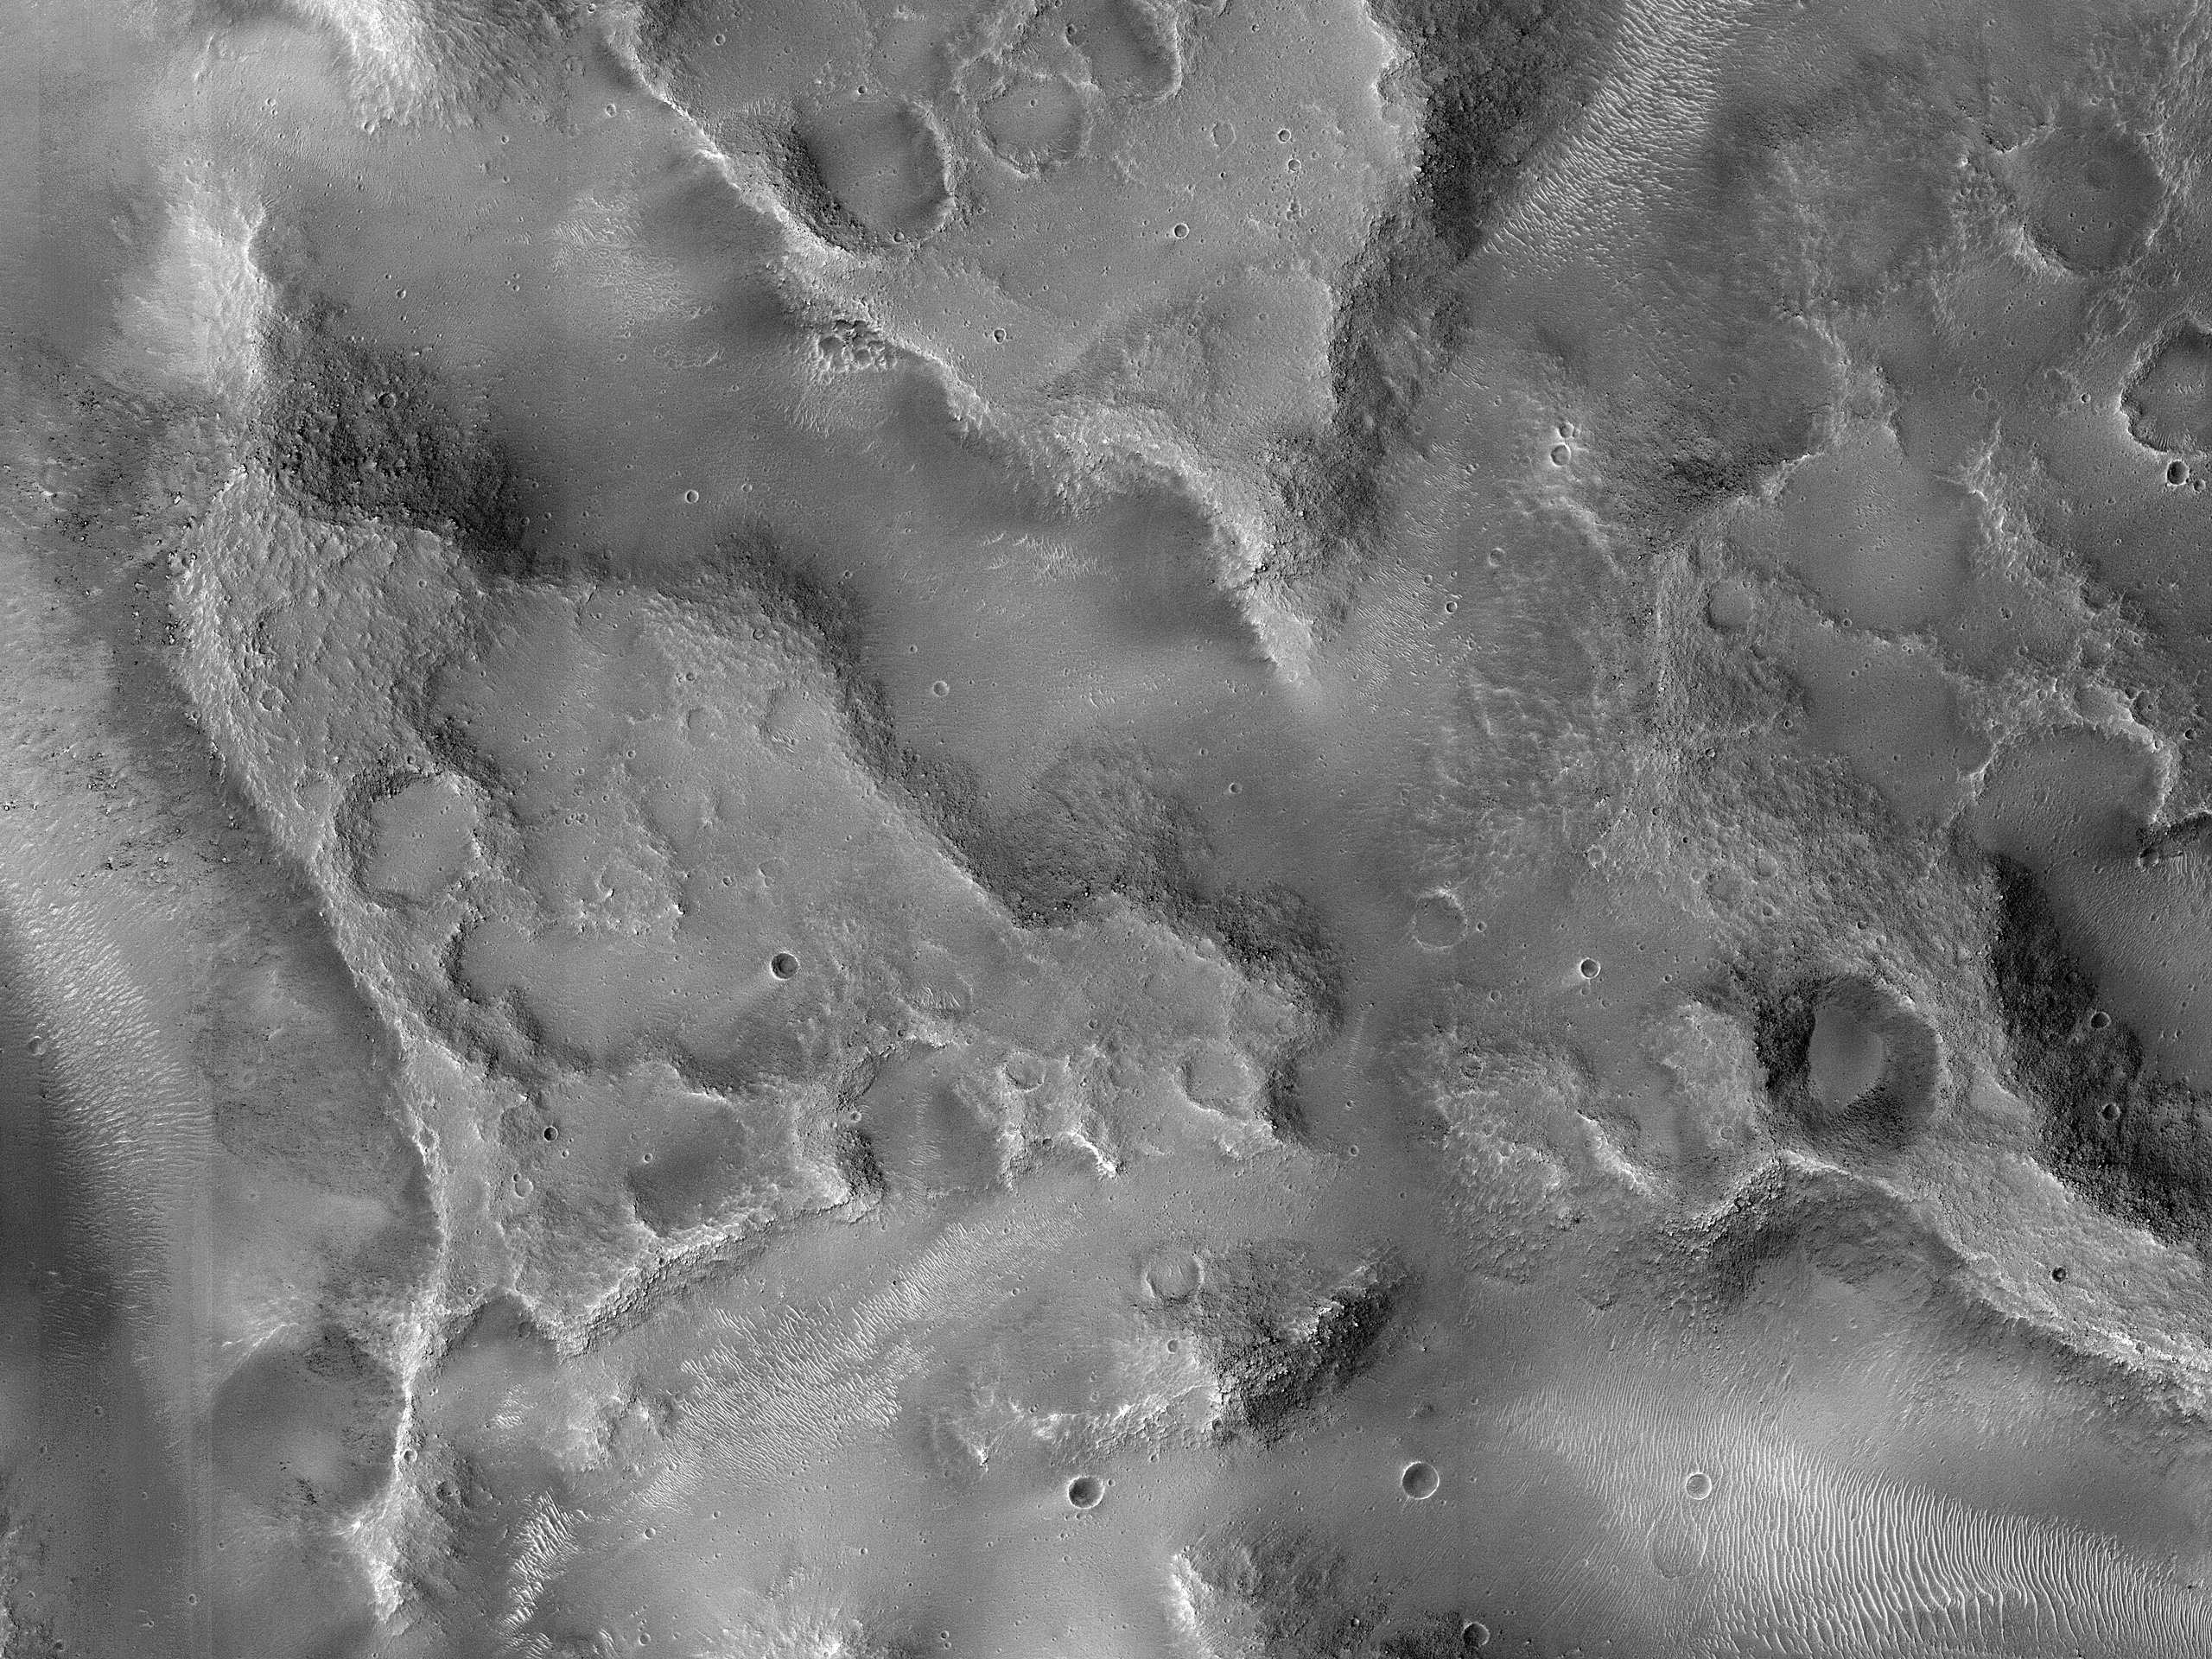 Fractured Blocks on a Crater Floor